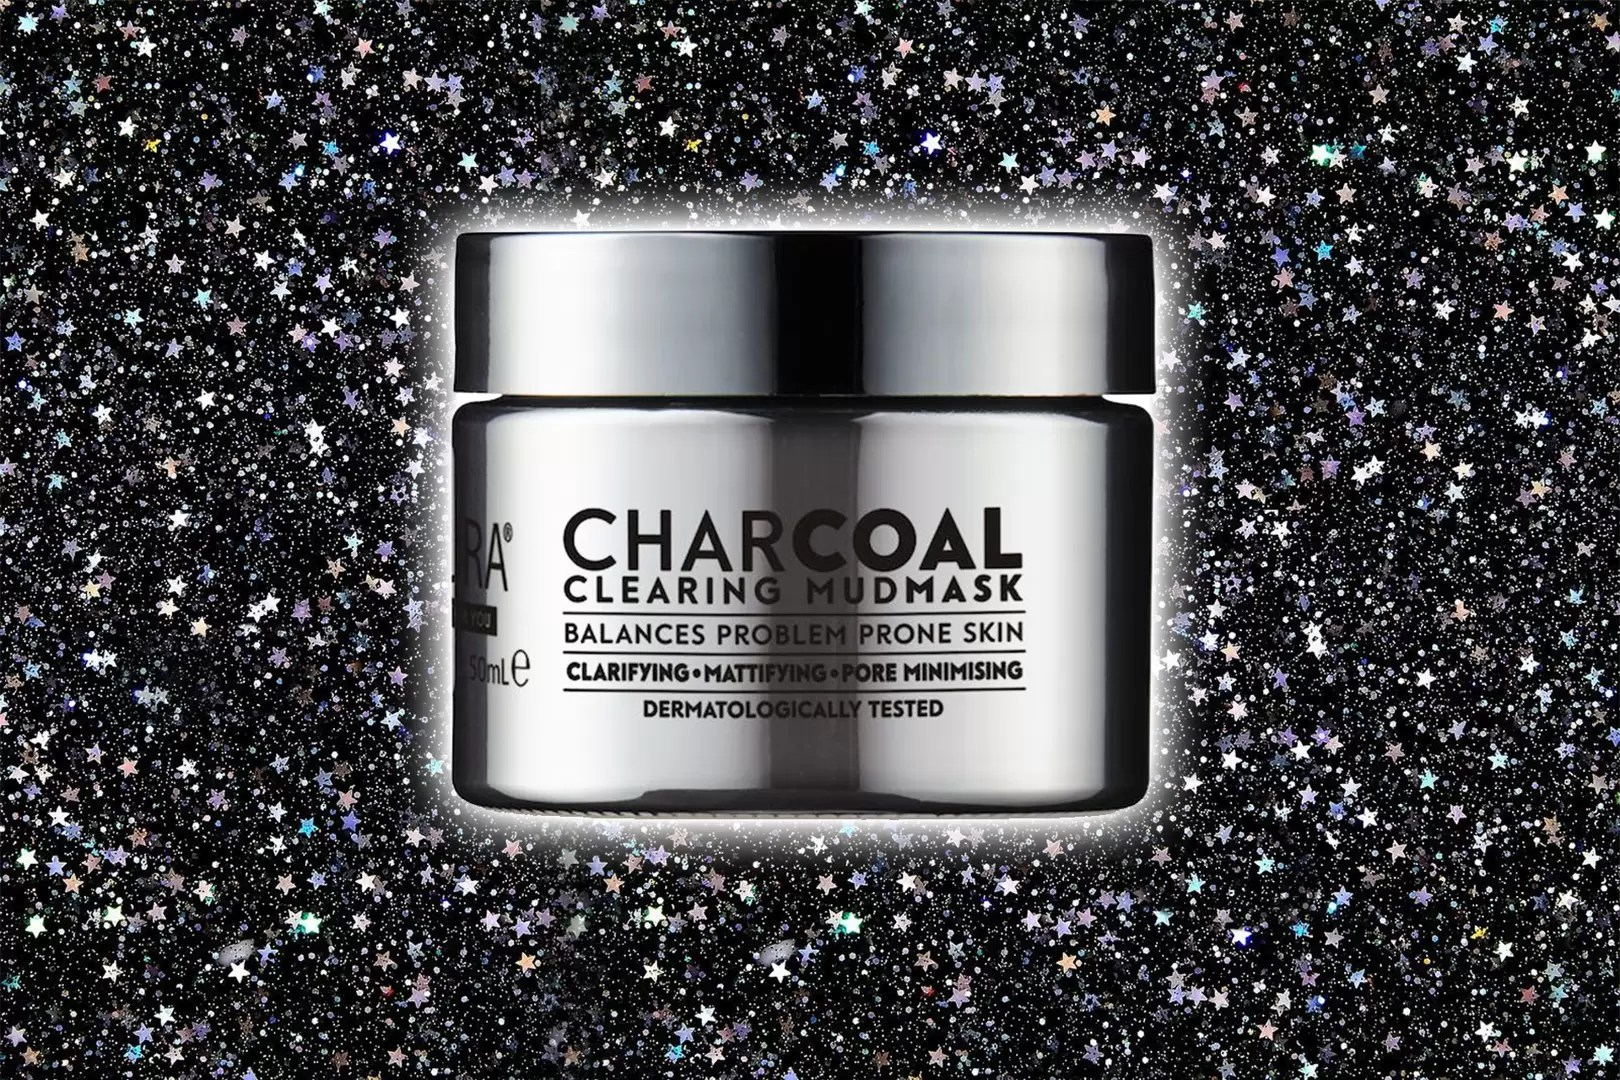 Aldi Shampoo Range Aldi Is Selling A Charcoal Face Mask And Shoppers Love It Glamour Uk